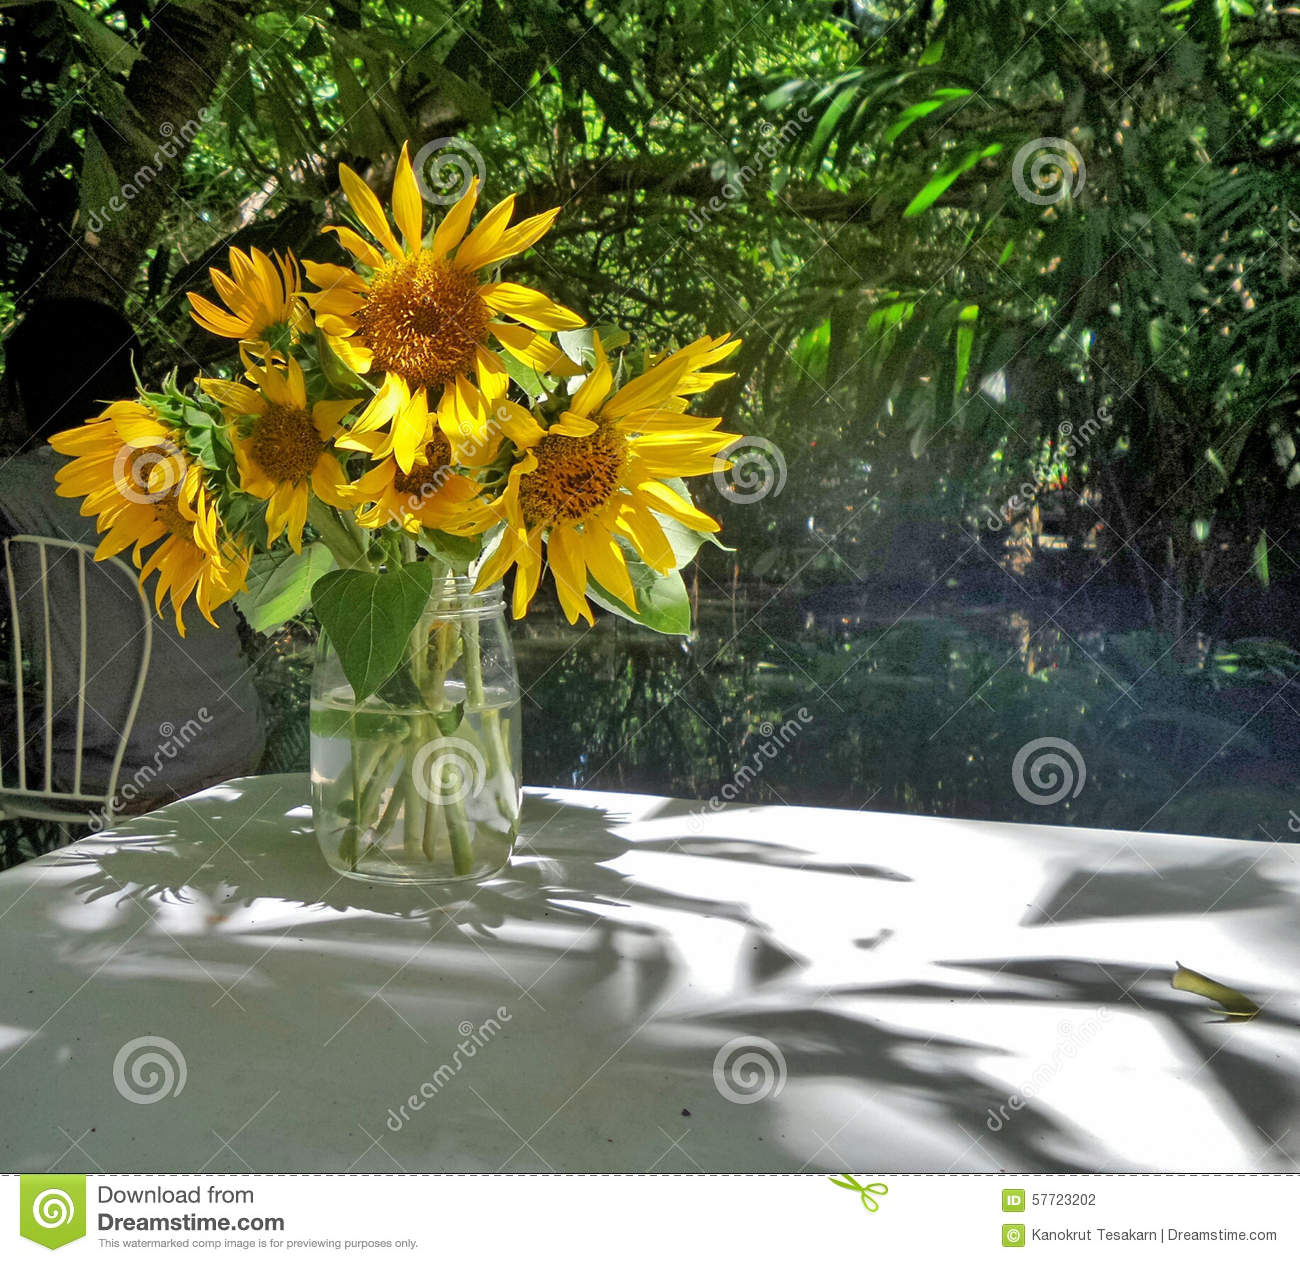 Sunflowers In Clear Glass Vase Under Shade Of Tree In The